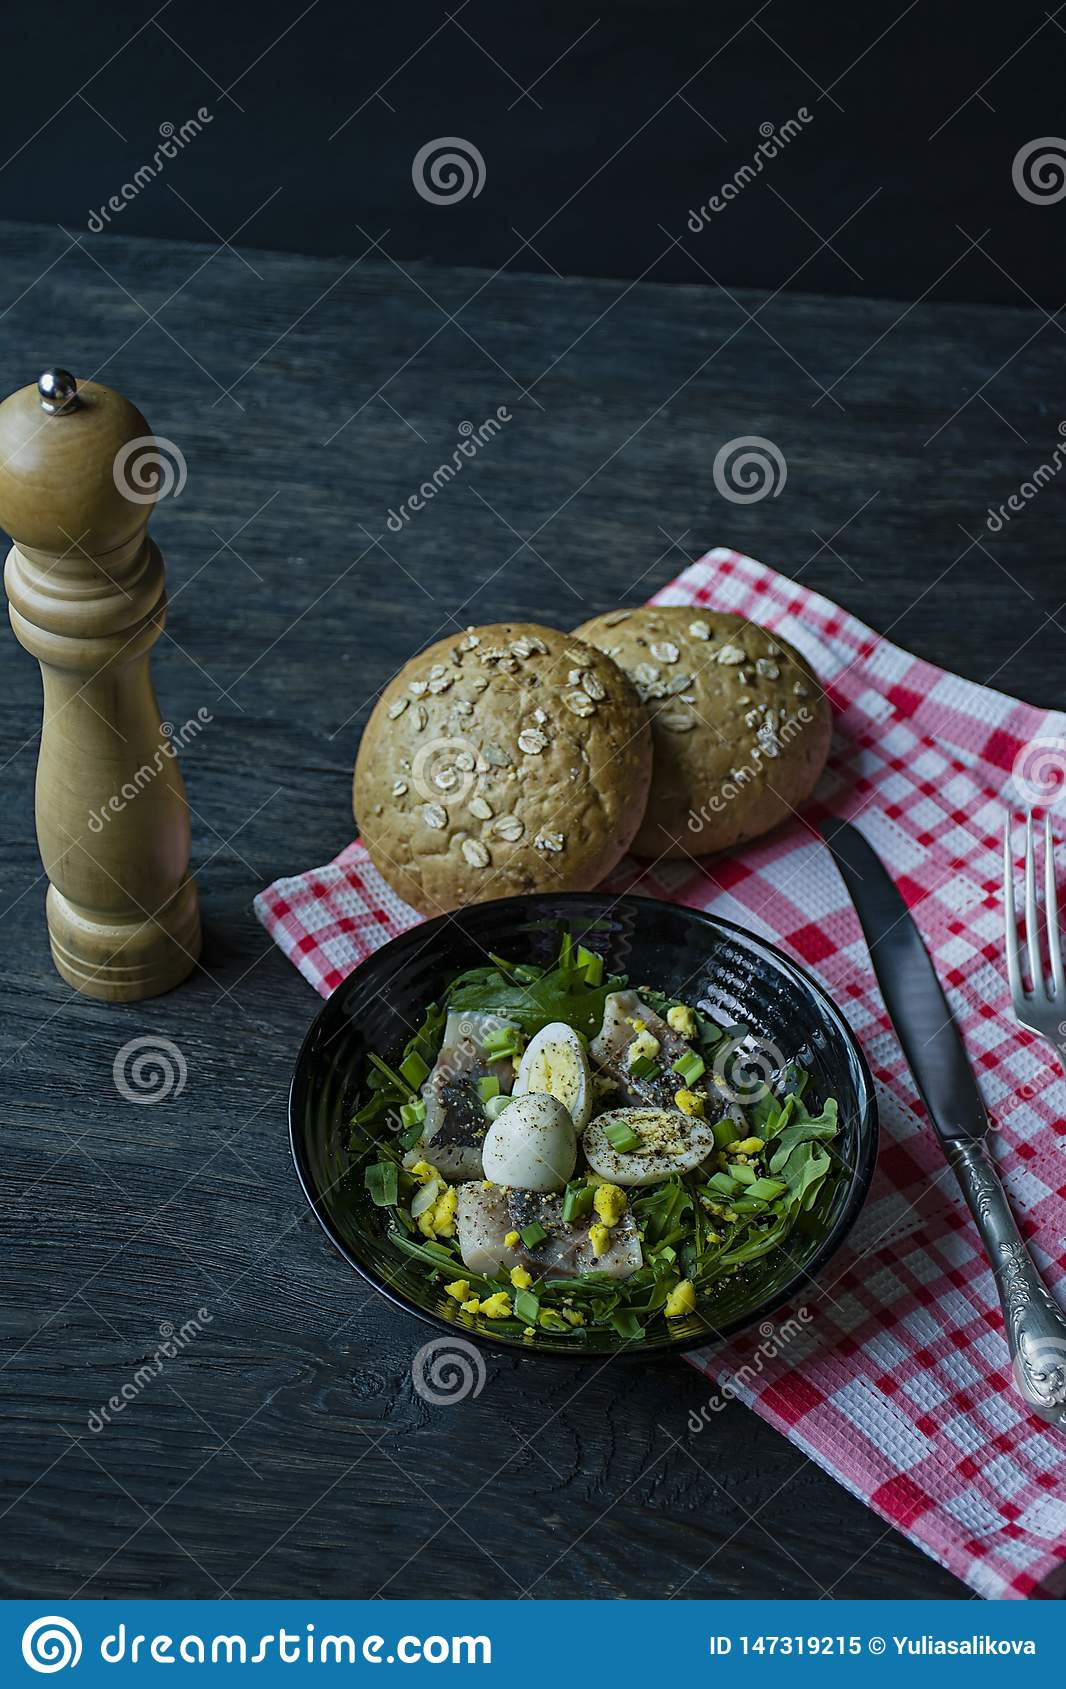 Marinated herring with arugula, onions, boiled quail eggs and lemon juice and olive oil. Delicious salad. Proper nutrition. Dark